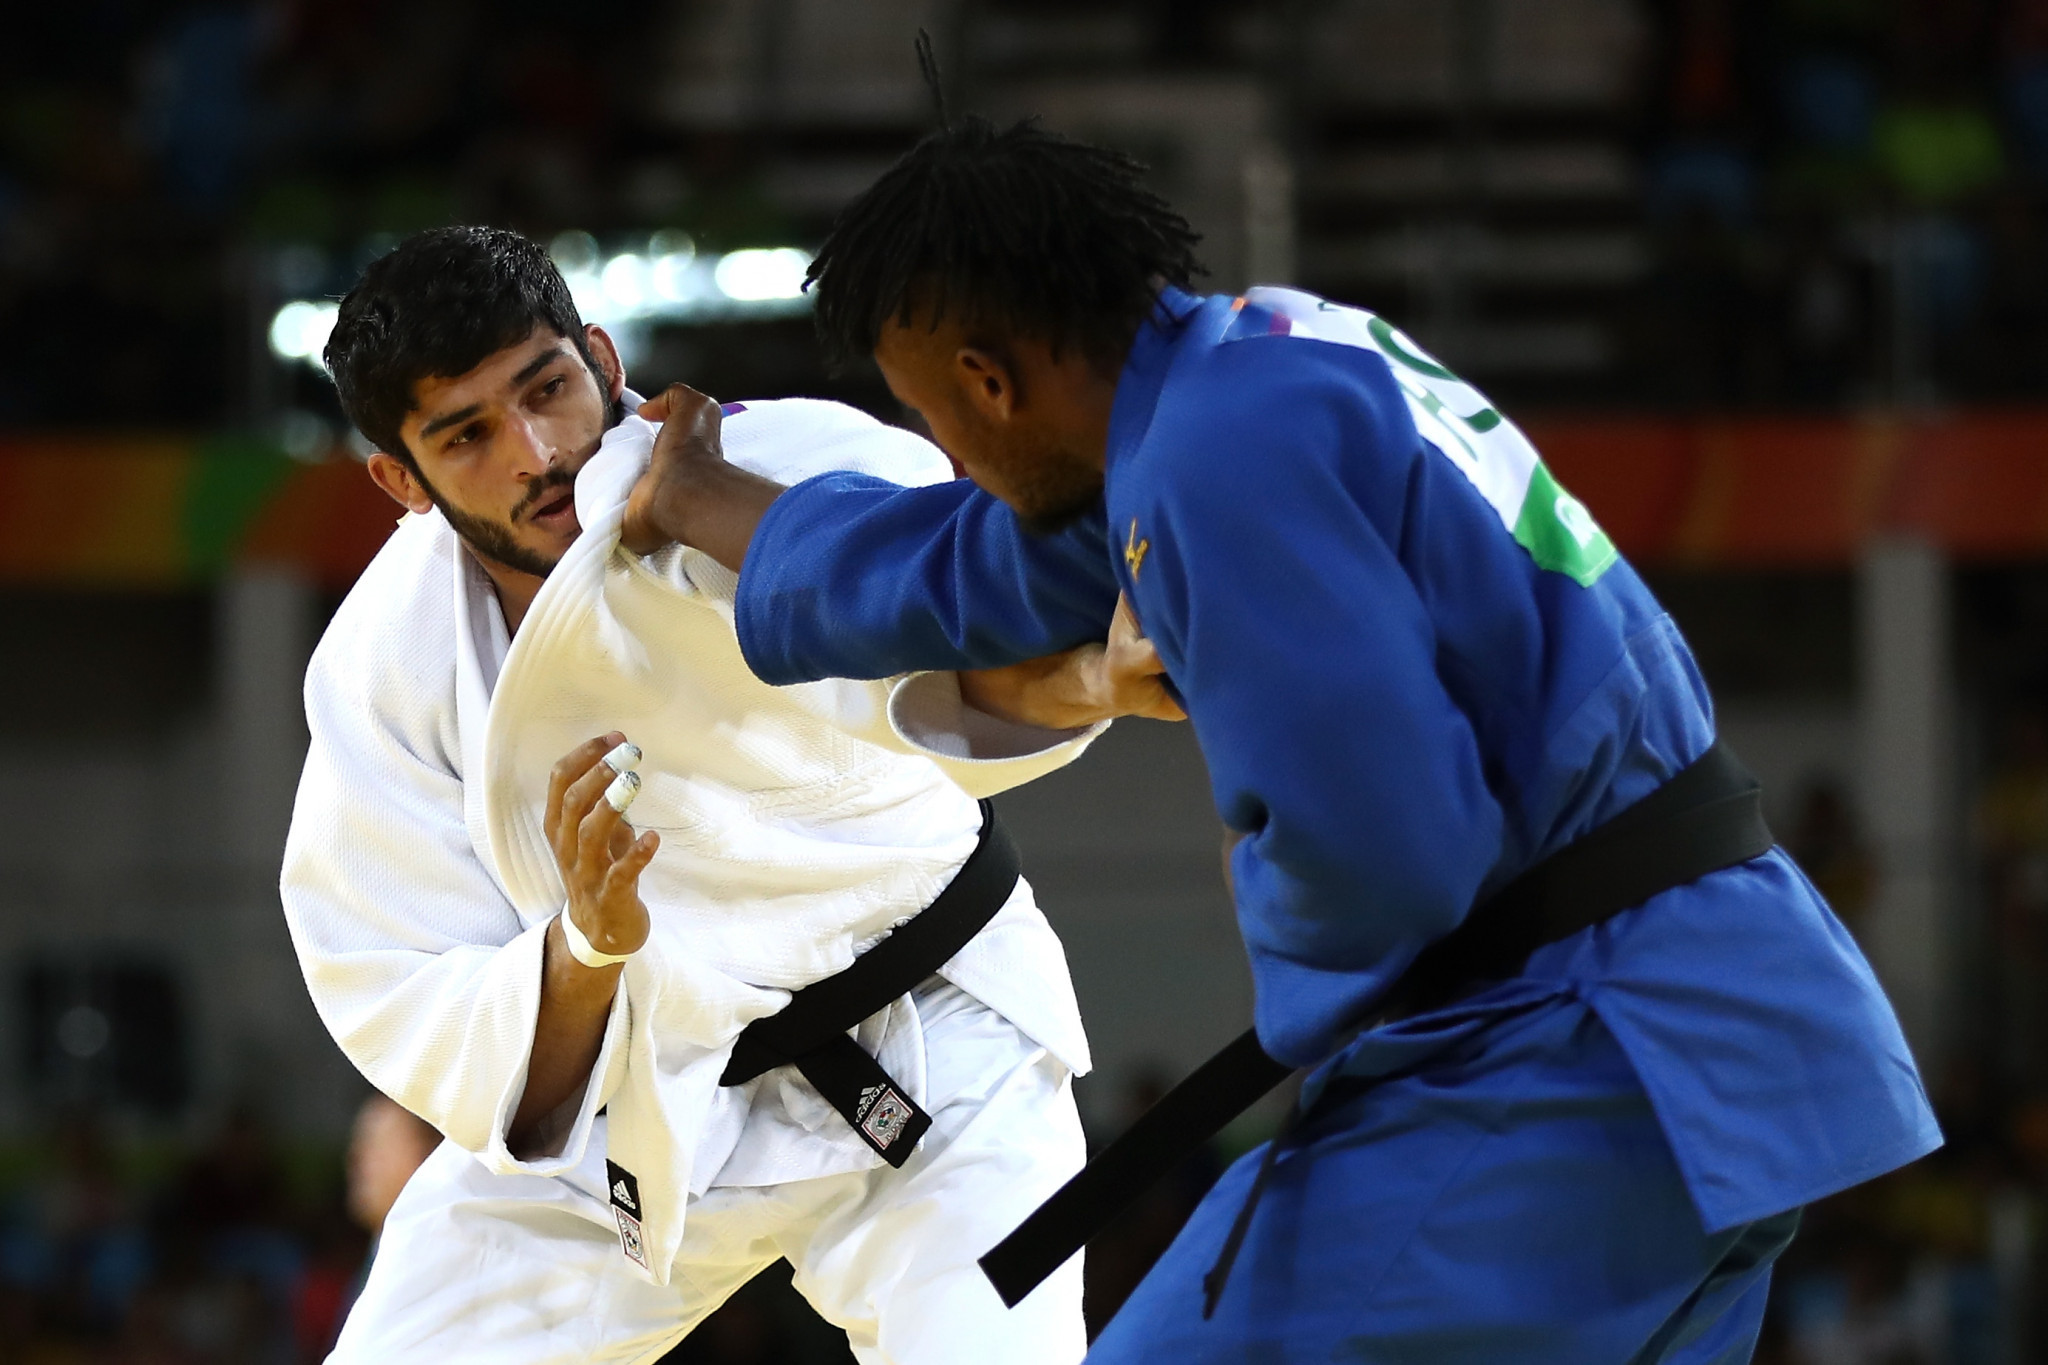 Avtar Singh is hoping to qualify for Tokyo 2020 with a strong showing at the Asia-Oceania Judo Championships ©Getty Images